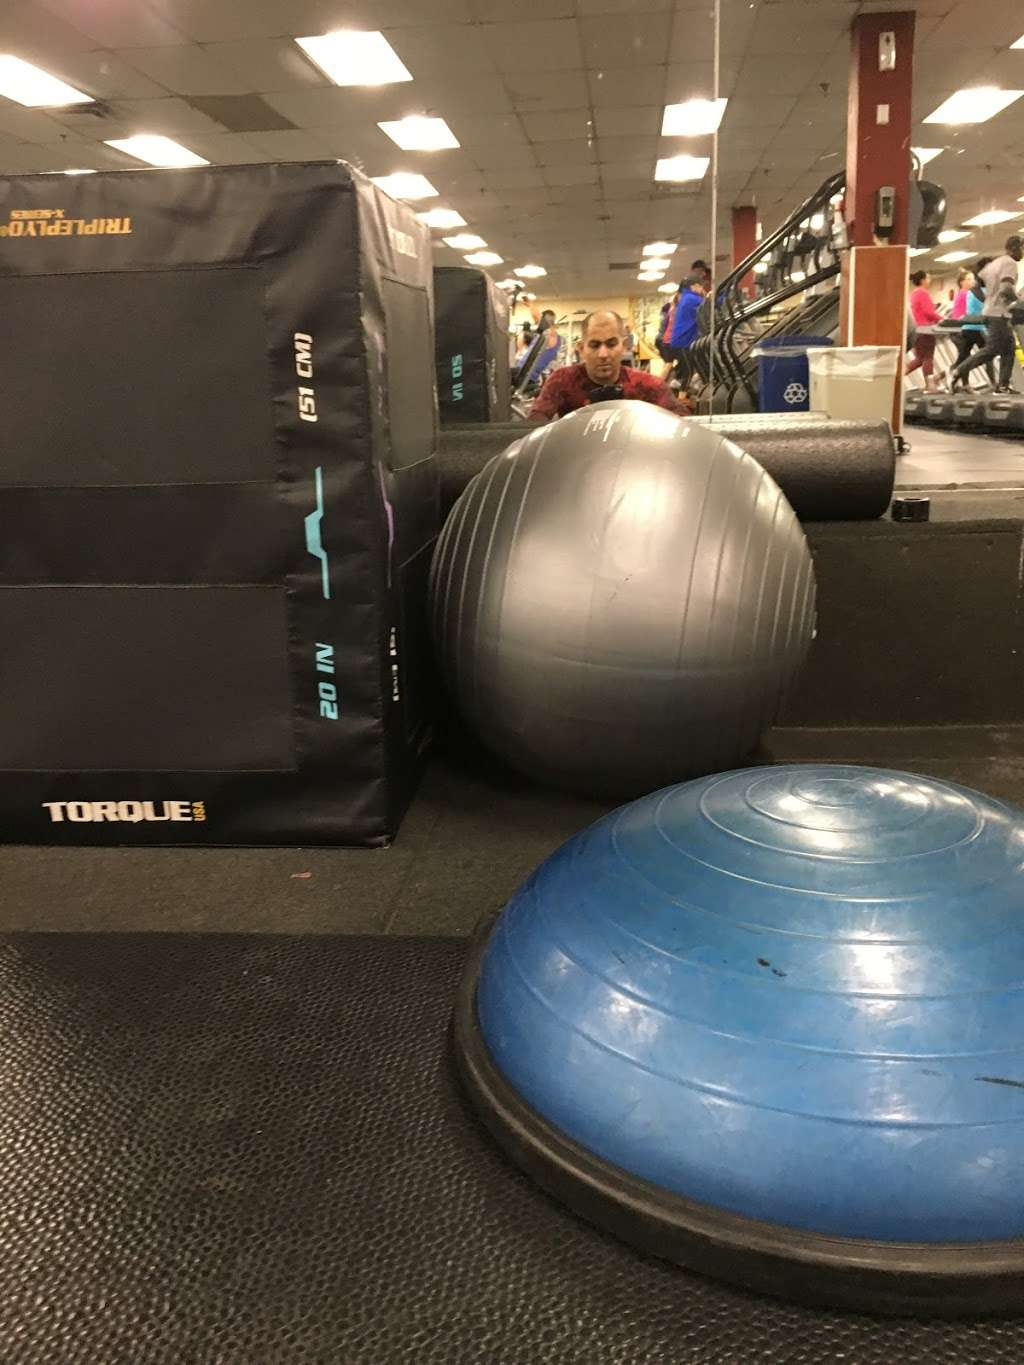 24 Hour Fitness - gym  | Photo 4 of 10 | Address: 589 Tuckahoe Rd, Yonkers, NY 10710, USA | Phone: (914) 793-3100